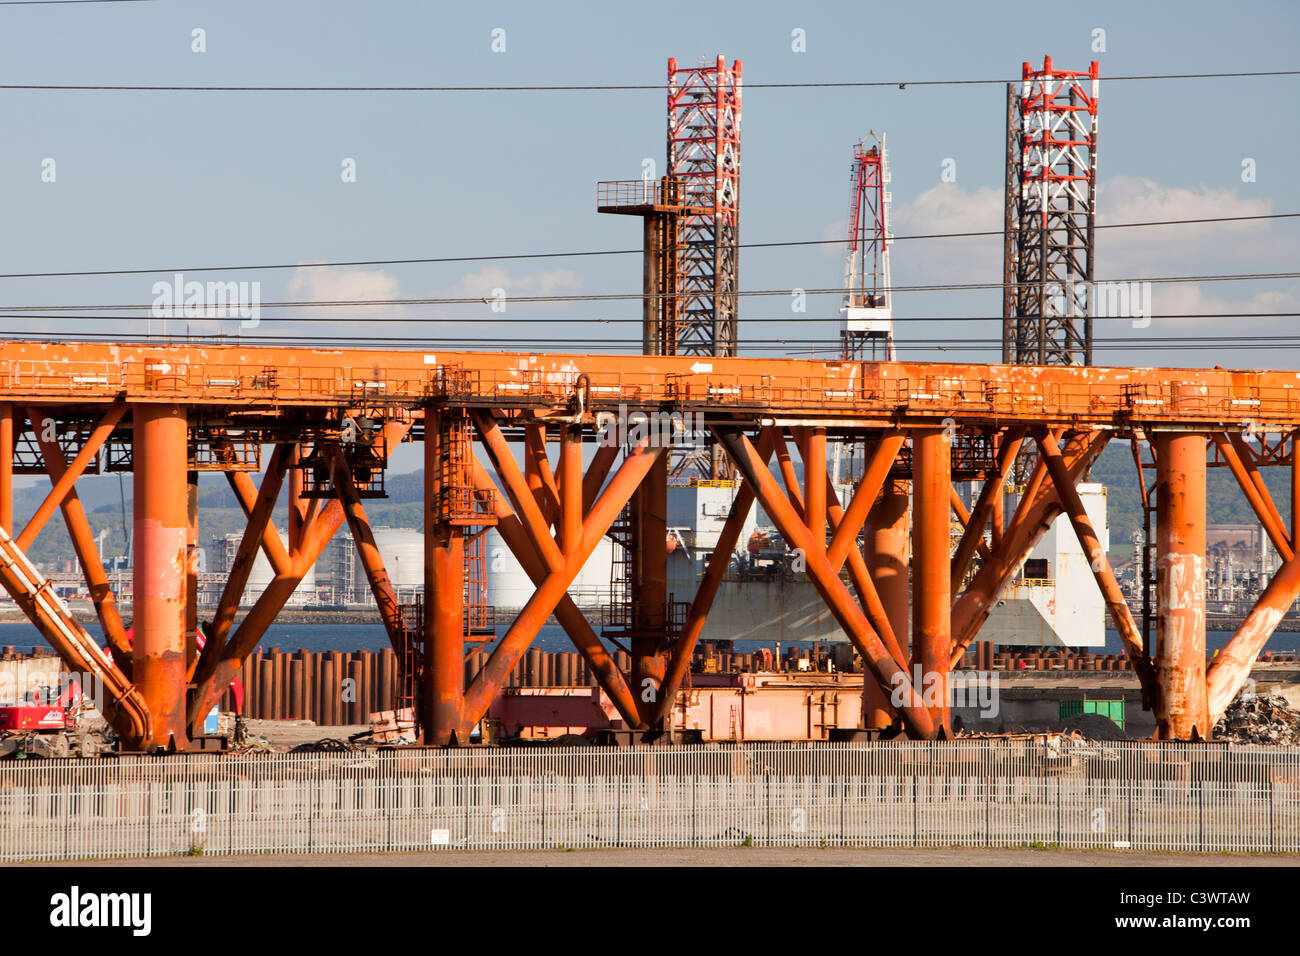 An old oil rigg and Jack up barge being dismantled at Able UK's ship dismantling plant at Seal Sands on Teeside, - Stock Image